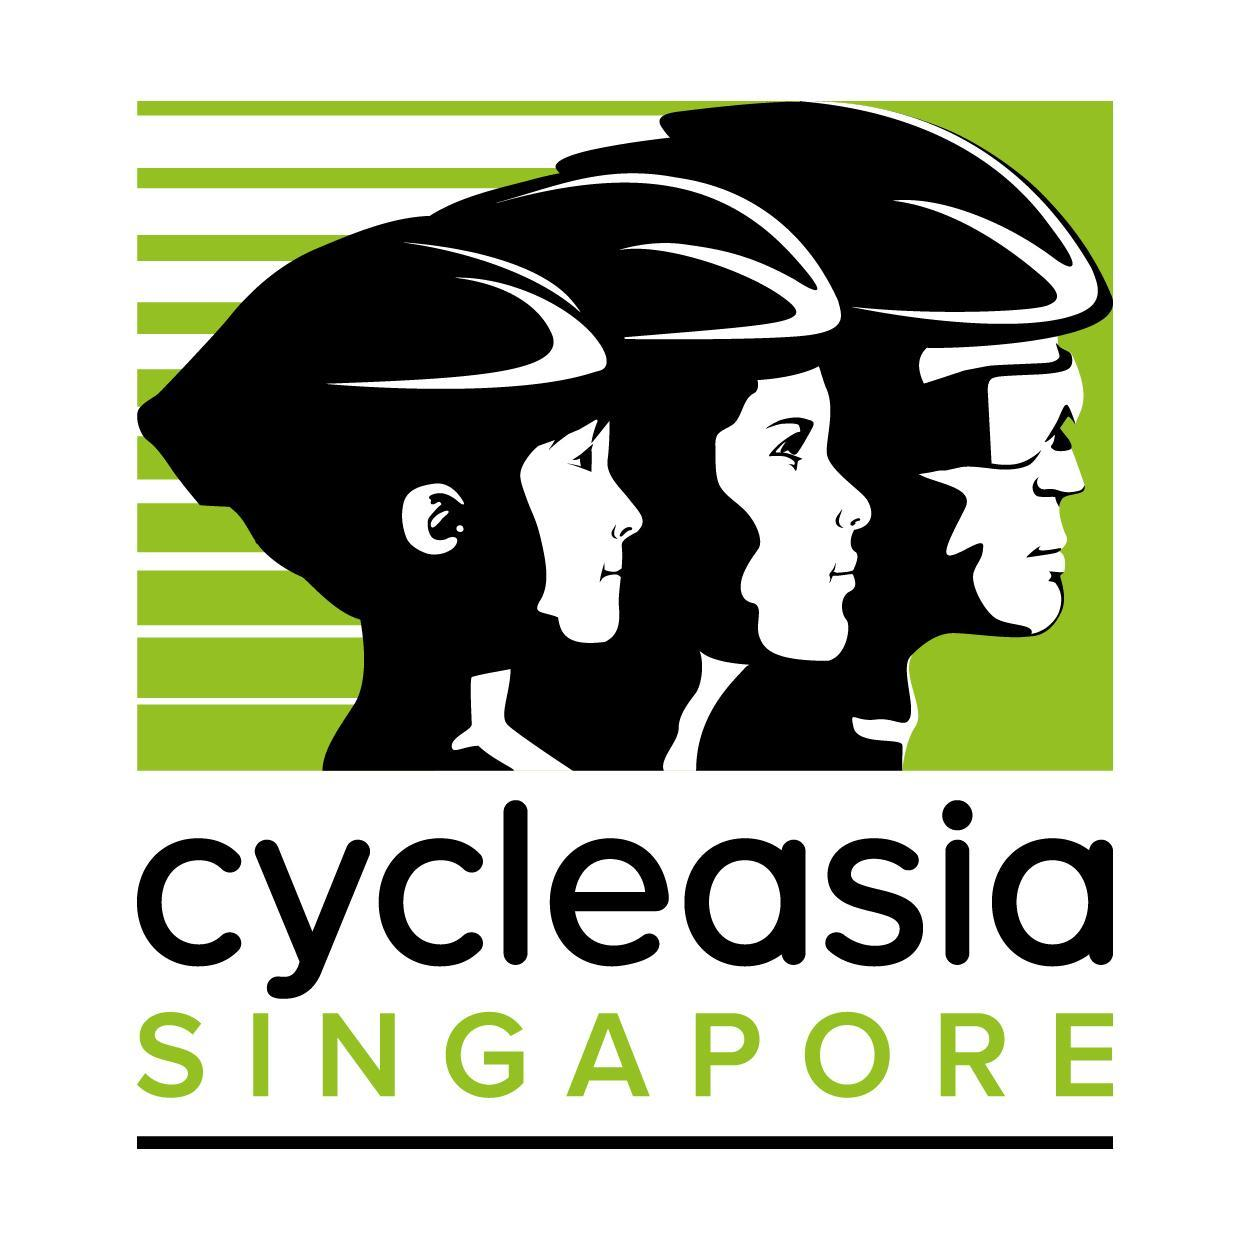 @cycleasiaSG